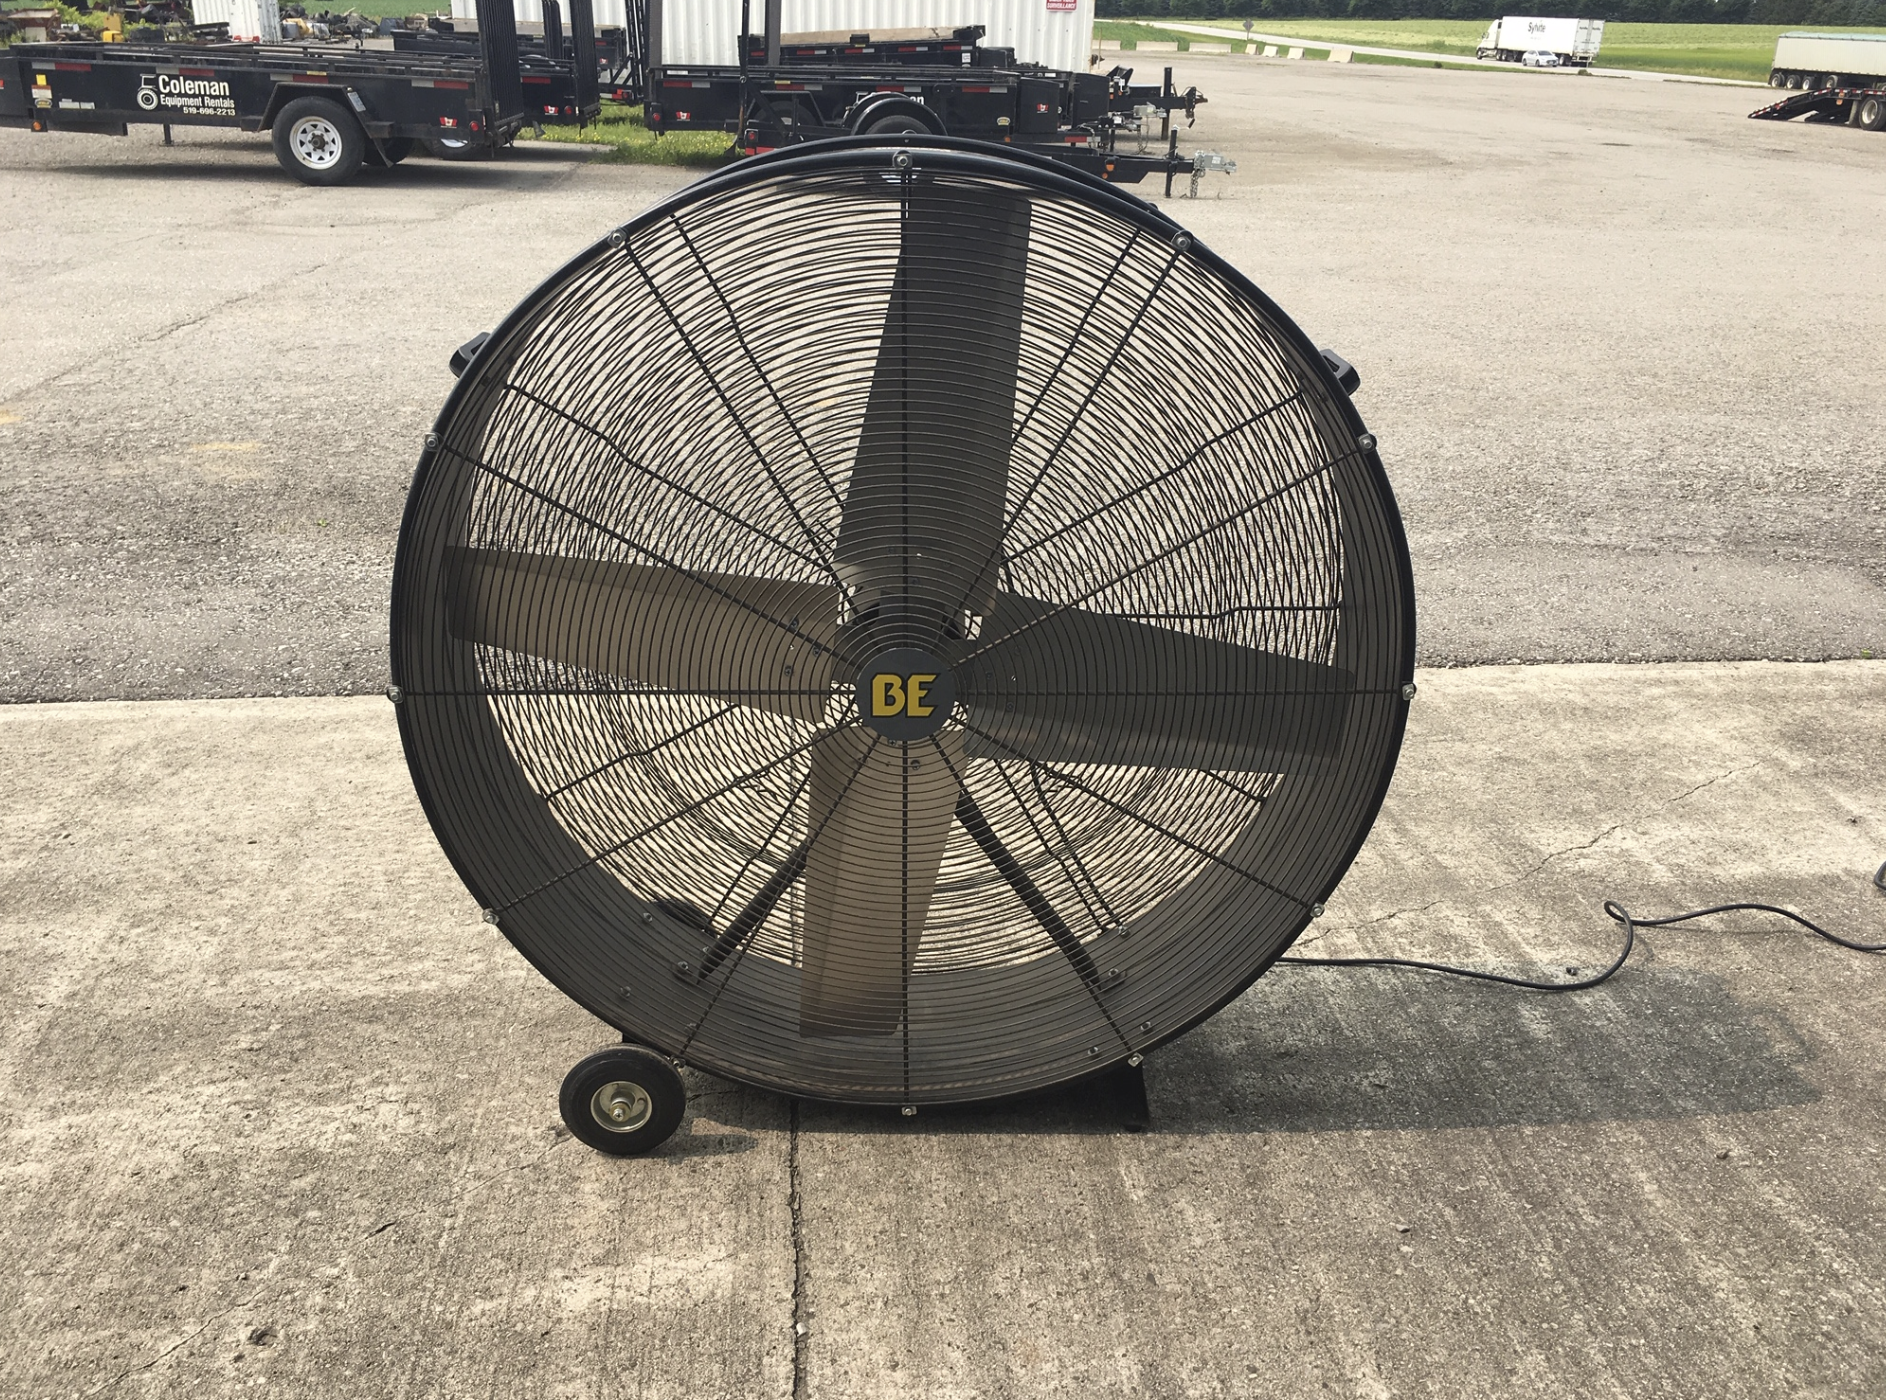 Drum Fan 42 inch Image